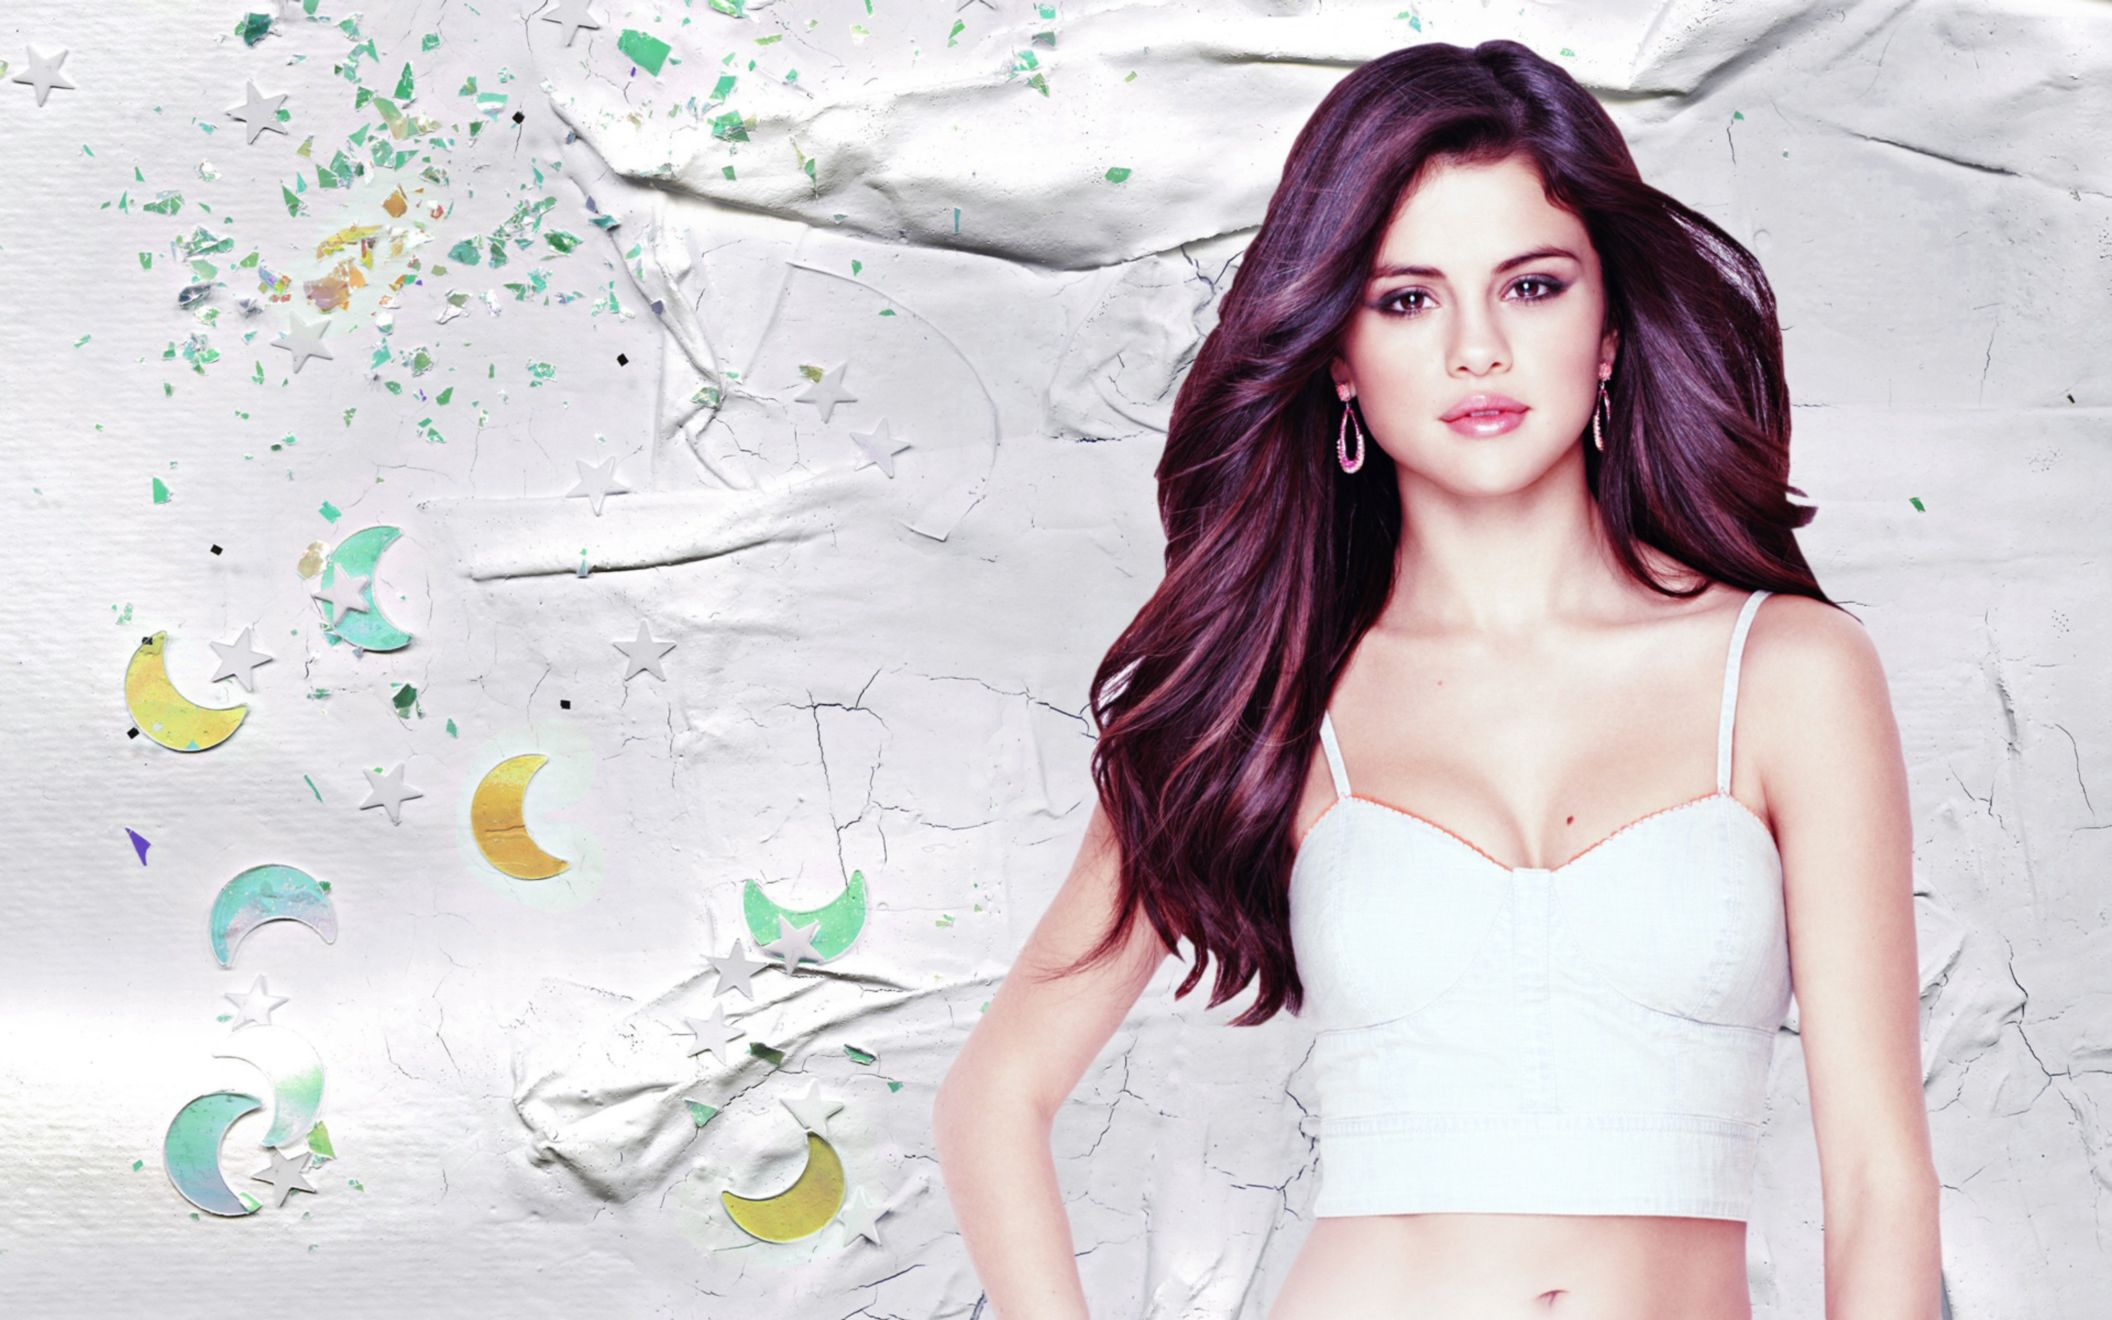 beautiful selena gomez wallpaper: desktop hd wallpaper - download